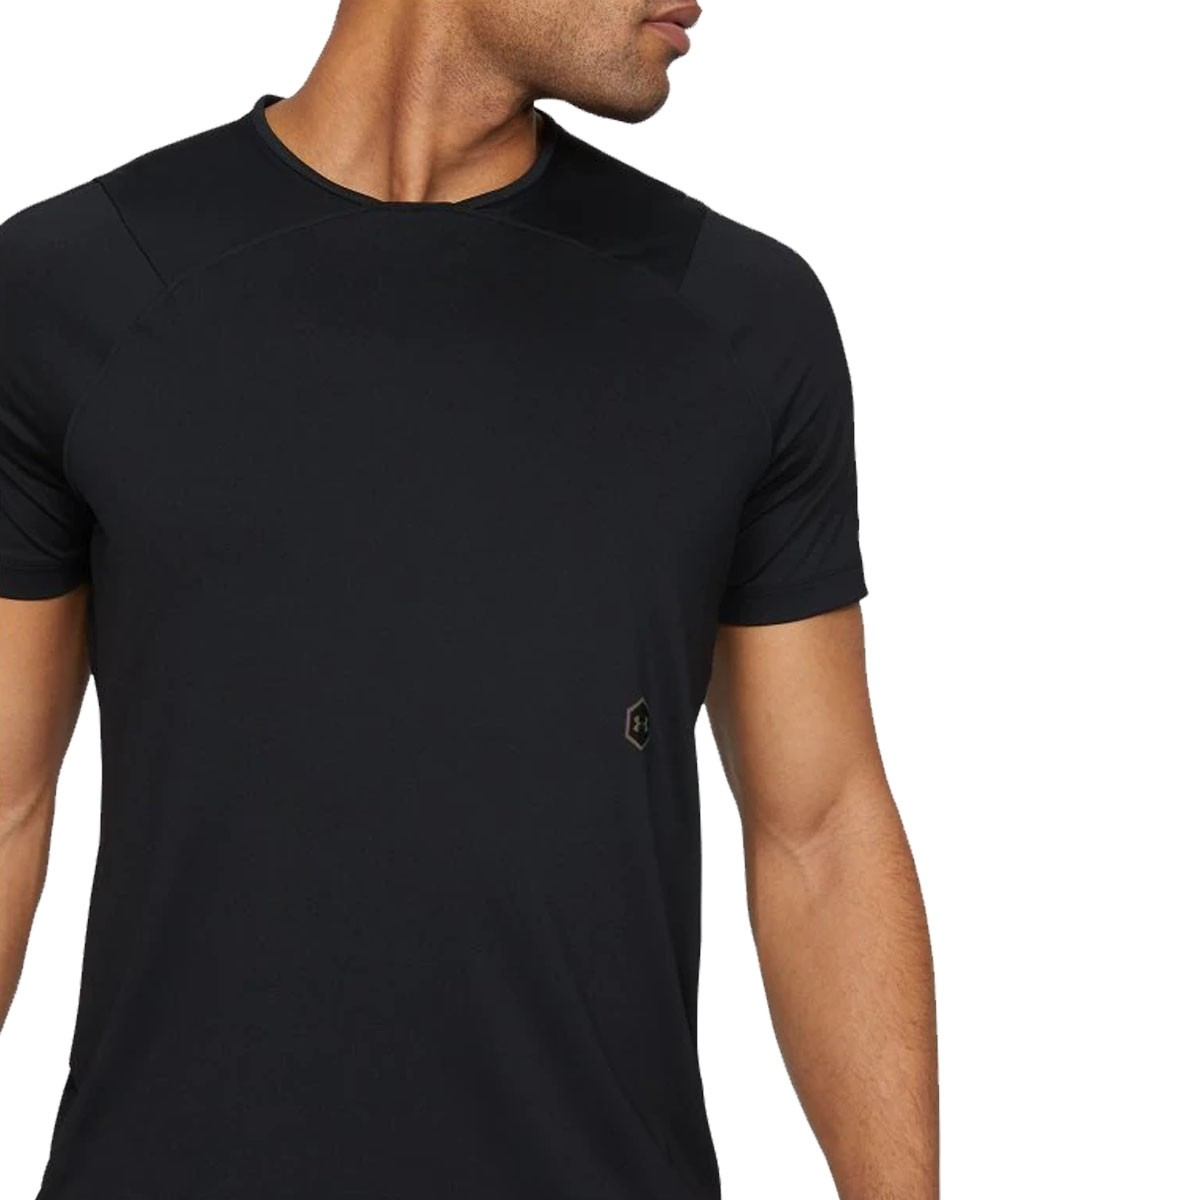 UA  Rush Fitted T-shirt 'Black'